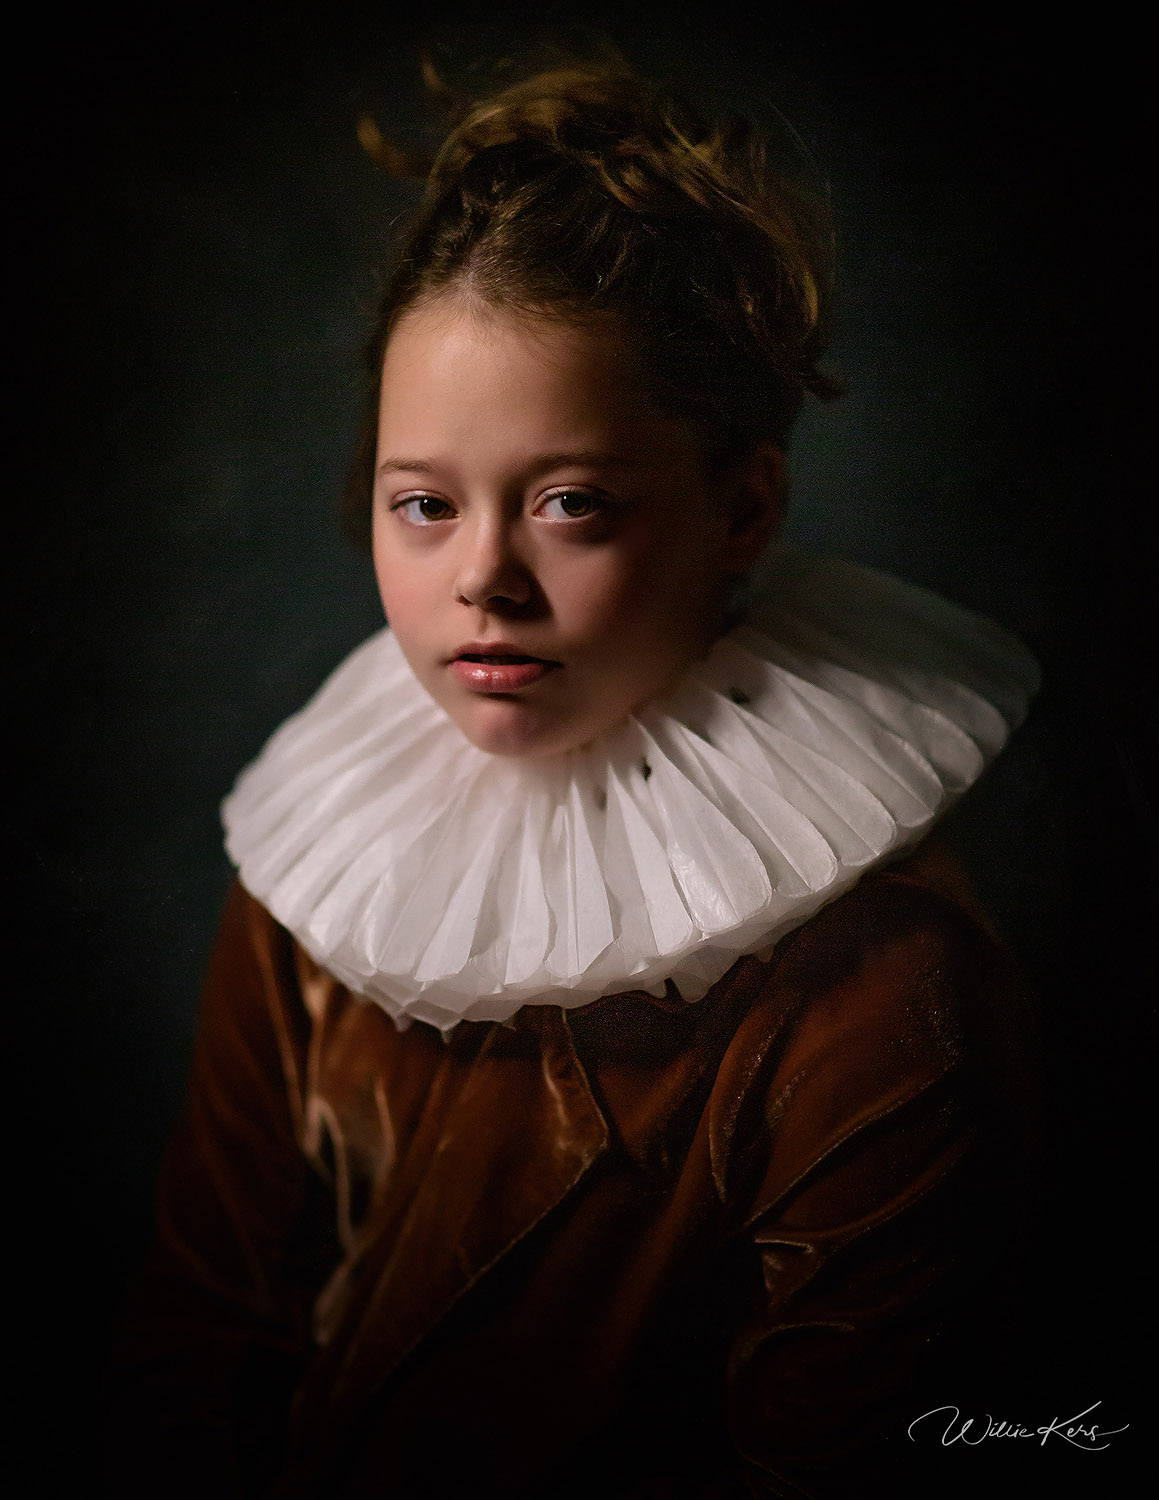 Canon 5d mark III fine art Rembrandt portrait of a young girl by Willie Kers